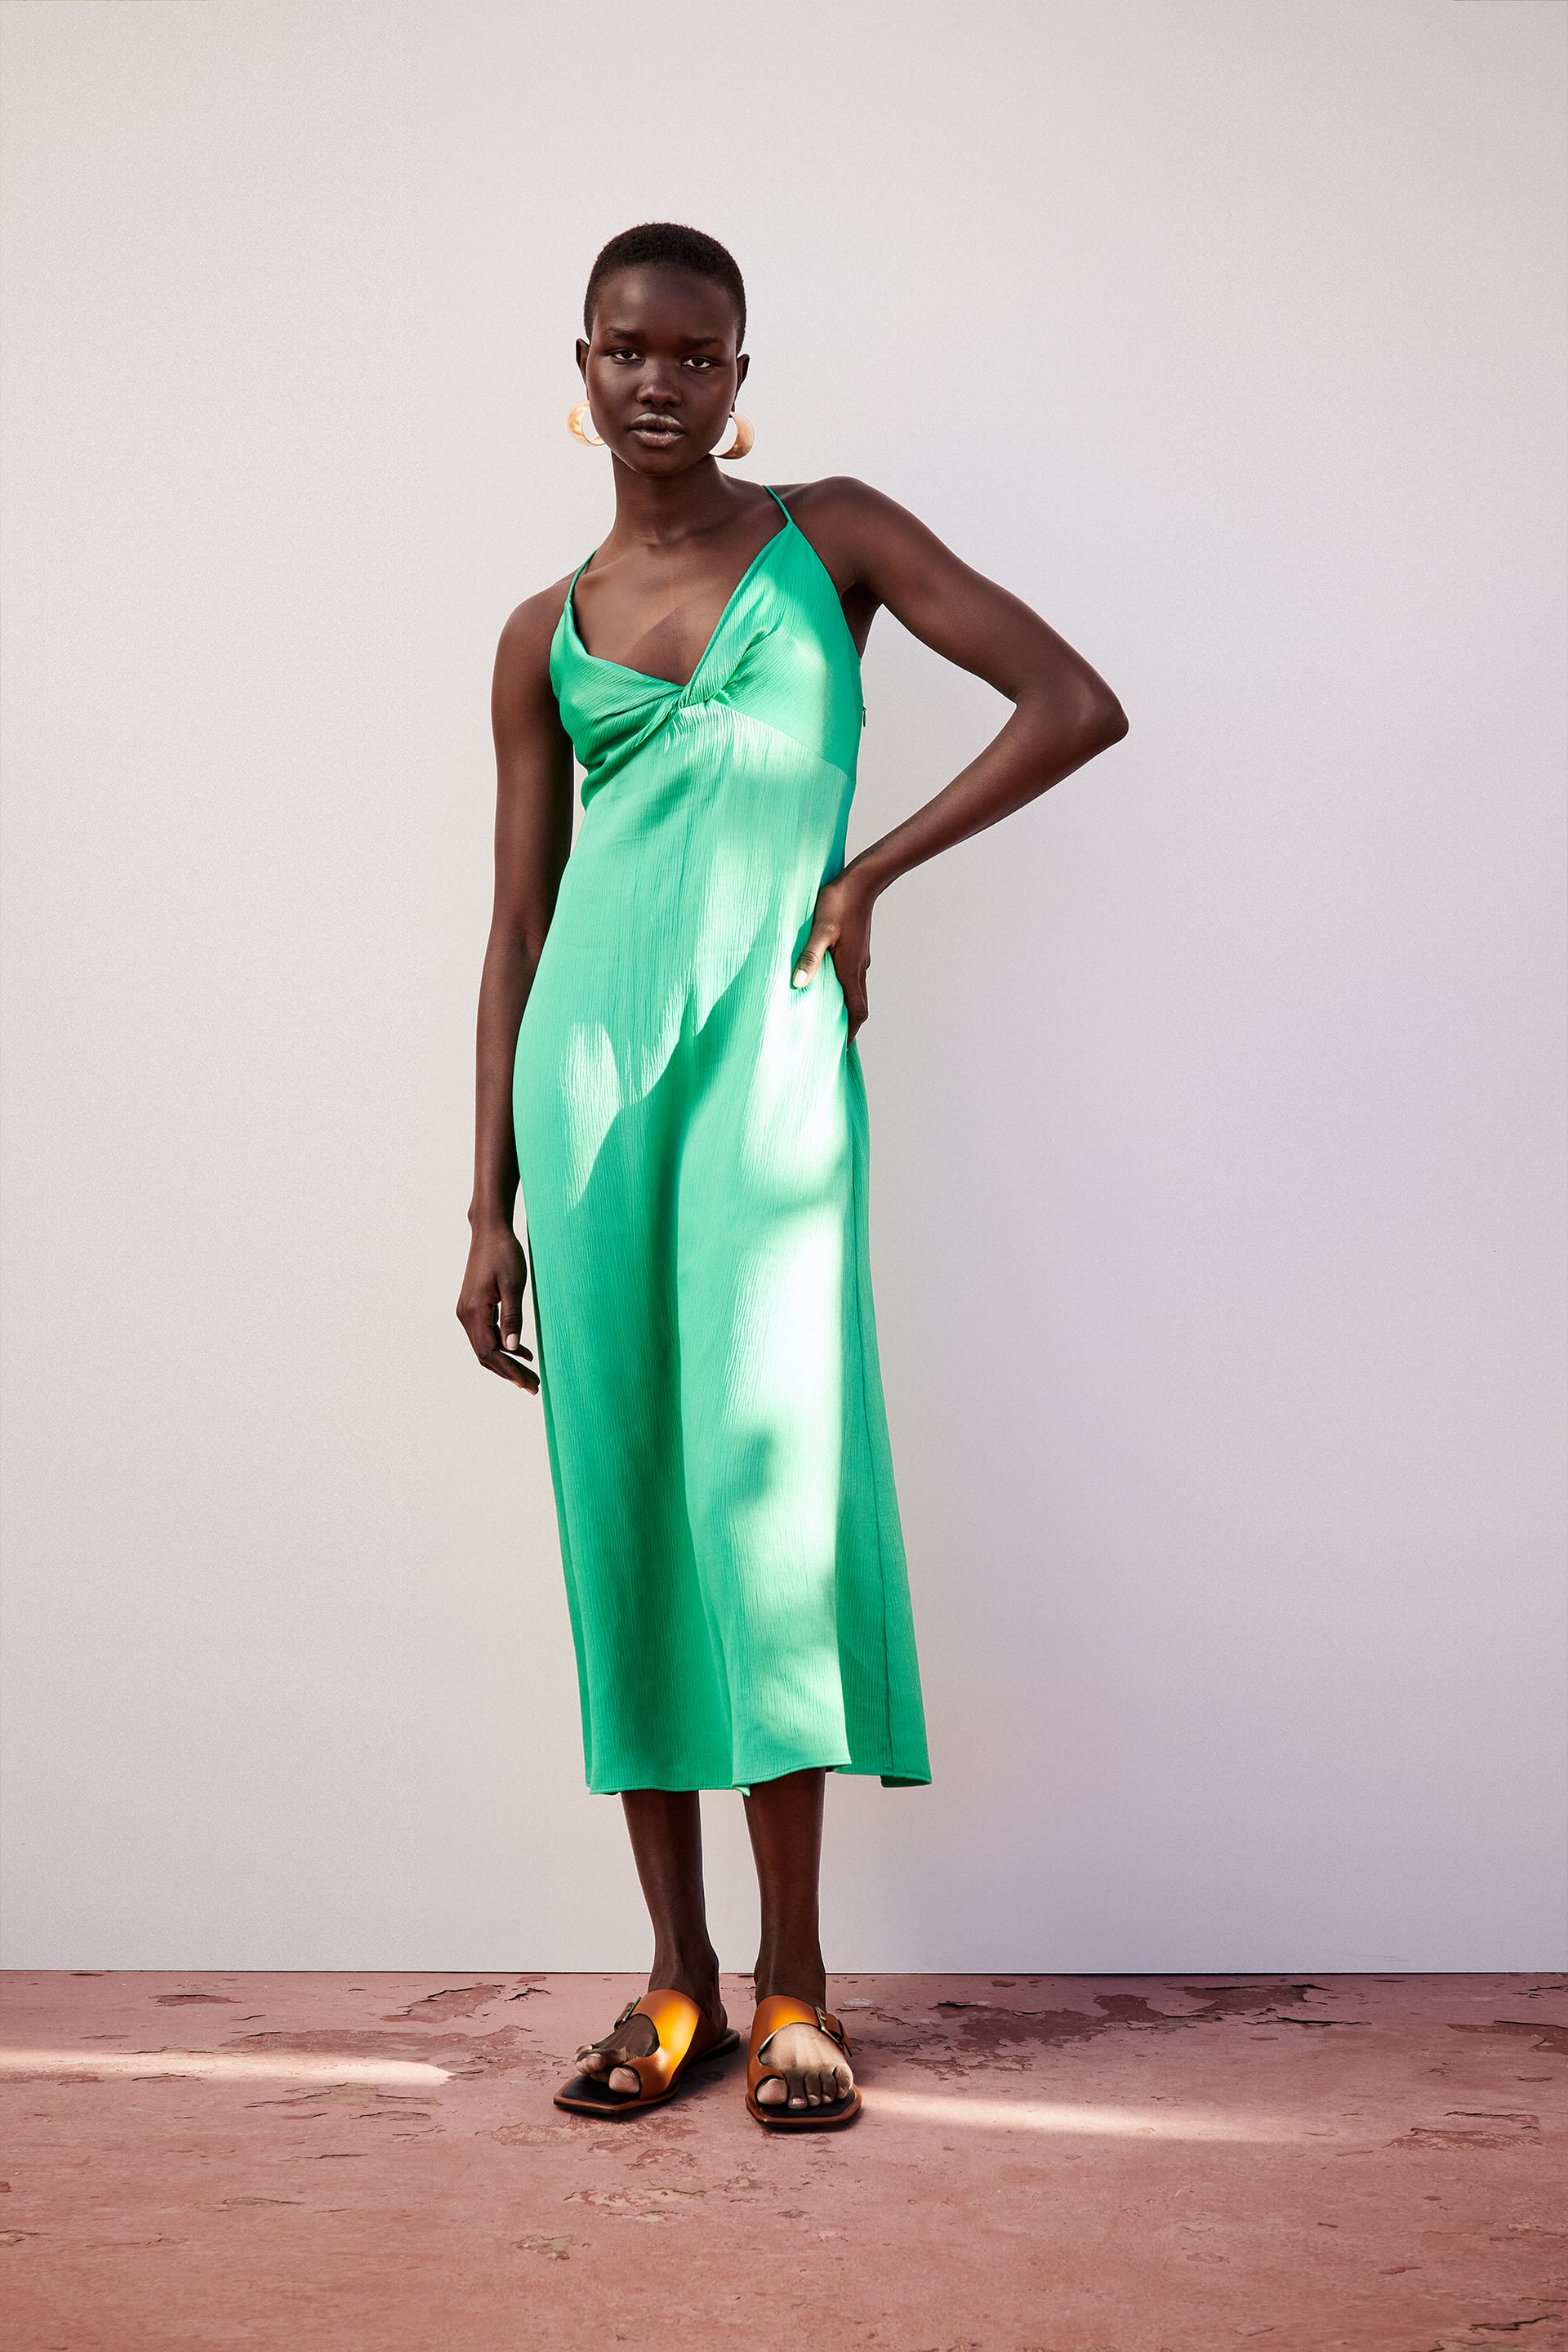 0264//205 ZARA WOMAN NWT SS20 FRONT KNOT LIME GREEN KNOTTED DRESS ALL SIZES REF